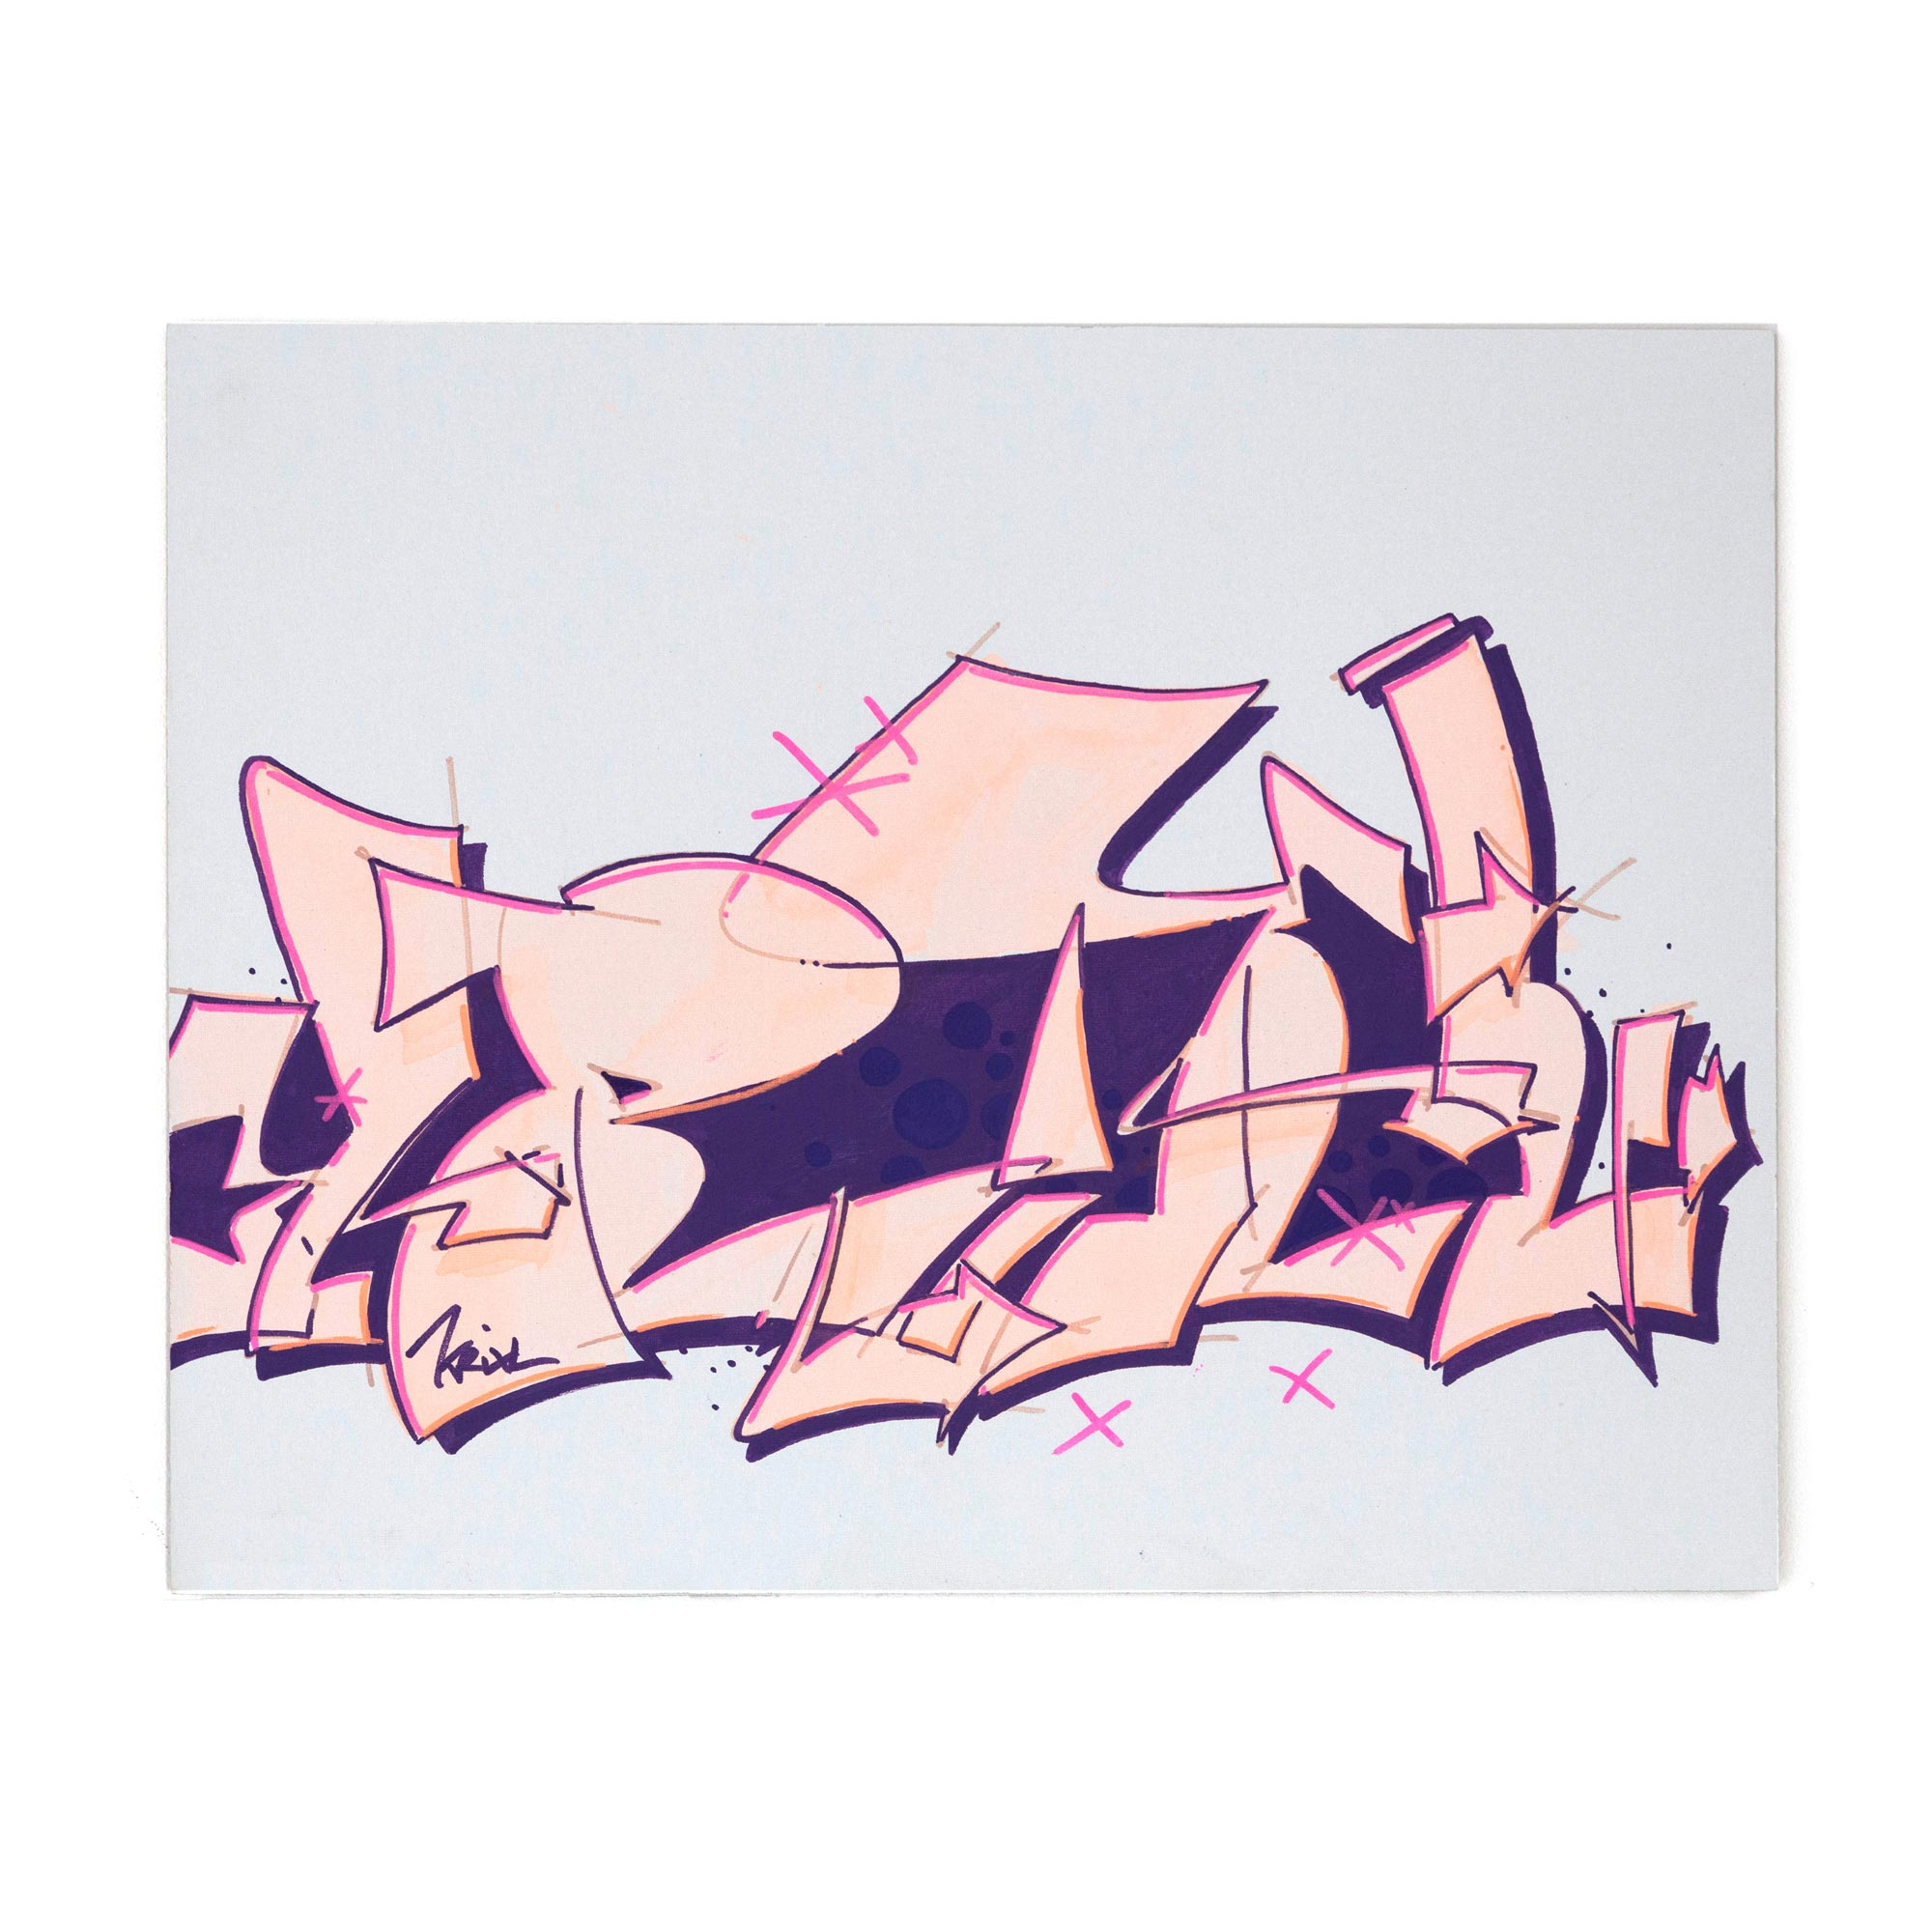 KRIXL SKETCH translucent pink purple